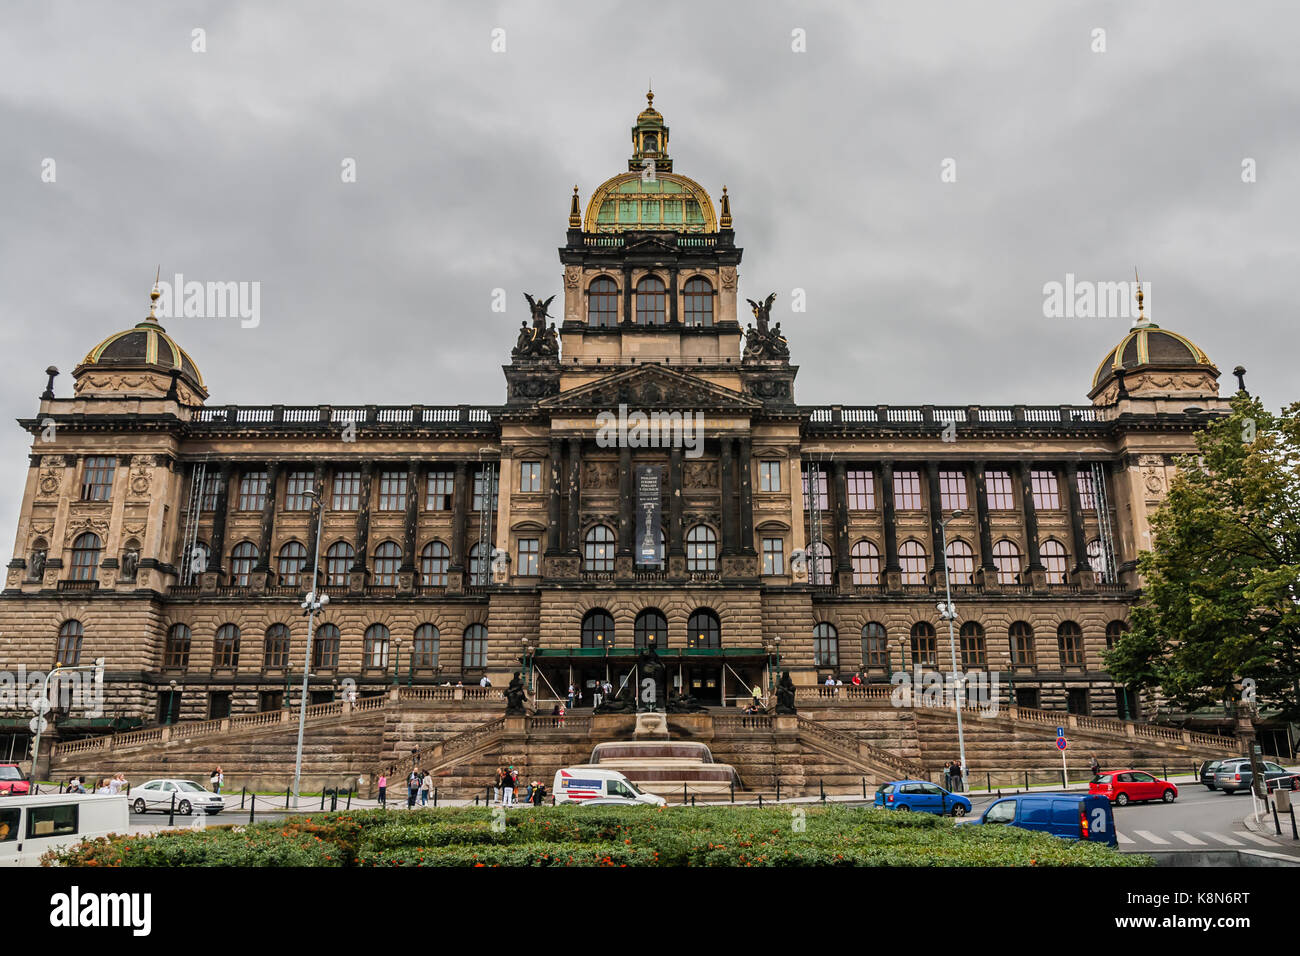 The facade of the National Museum, Prague - Stock Image